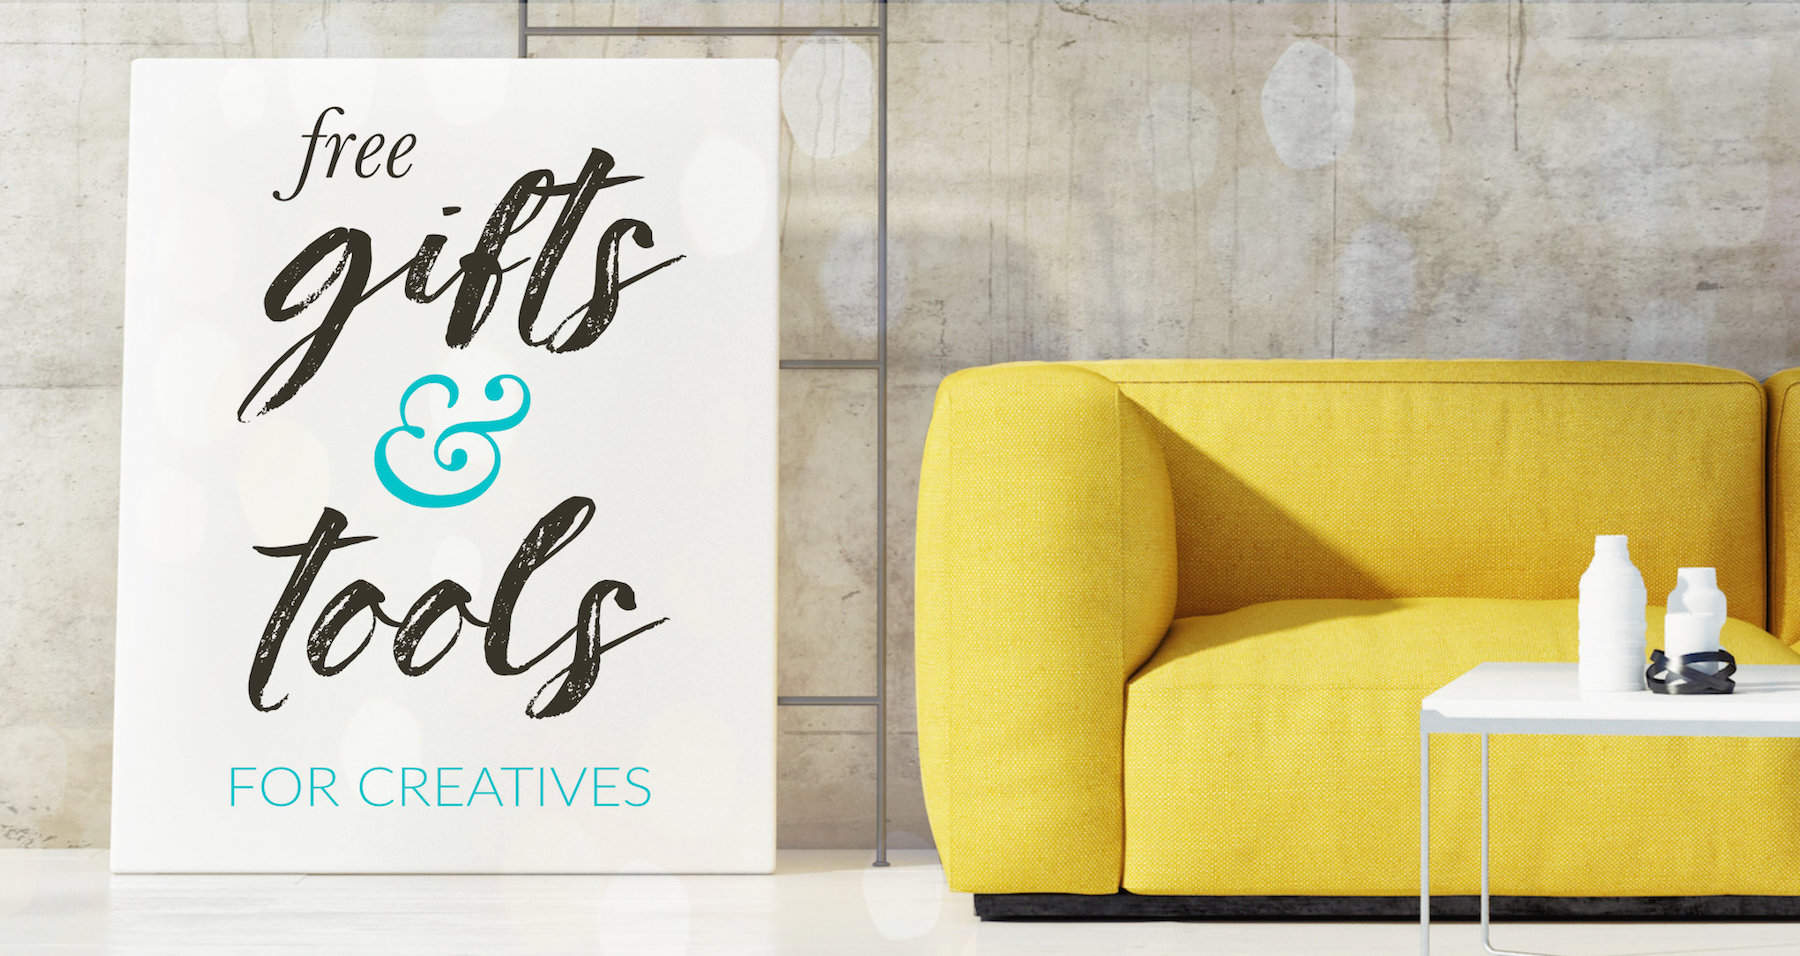 free gifts tools for creatives banner